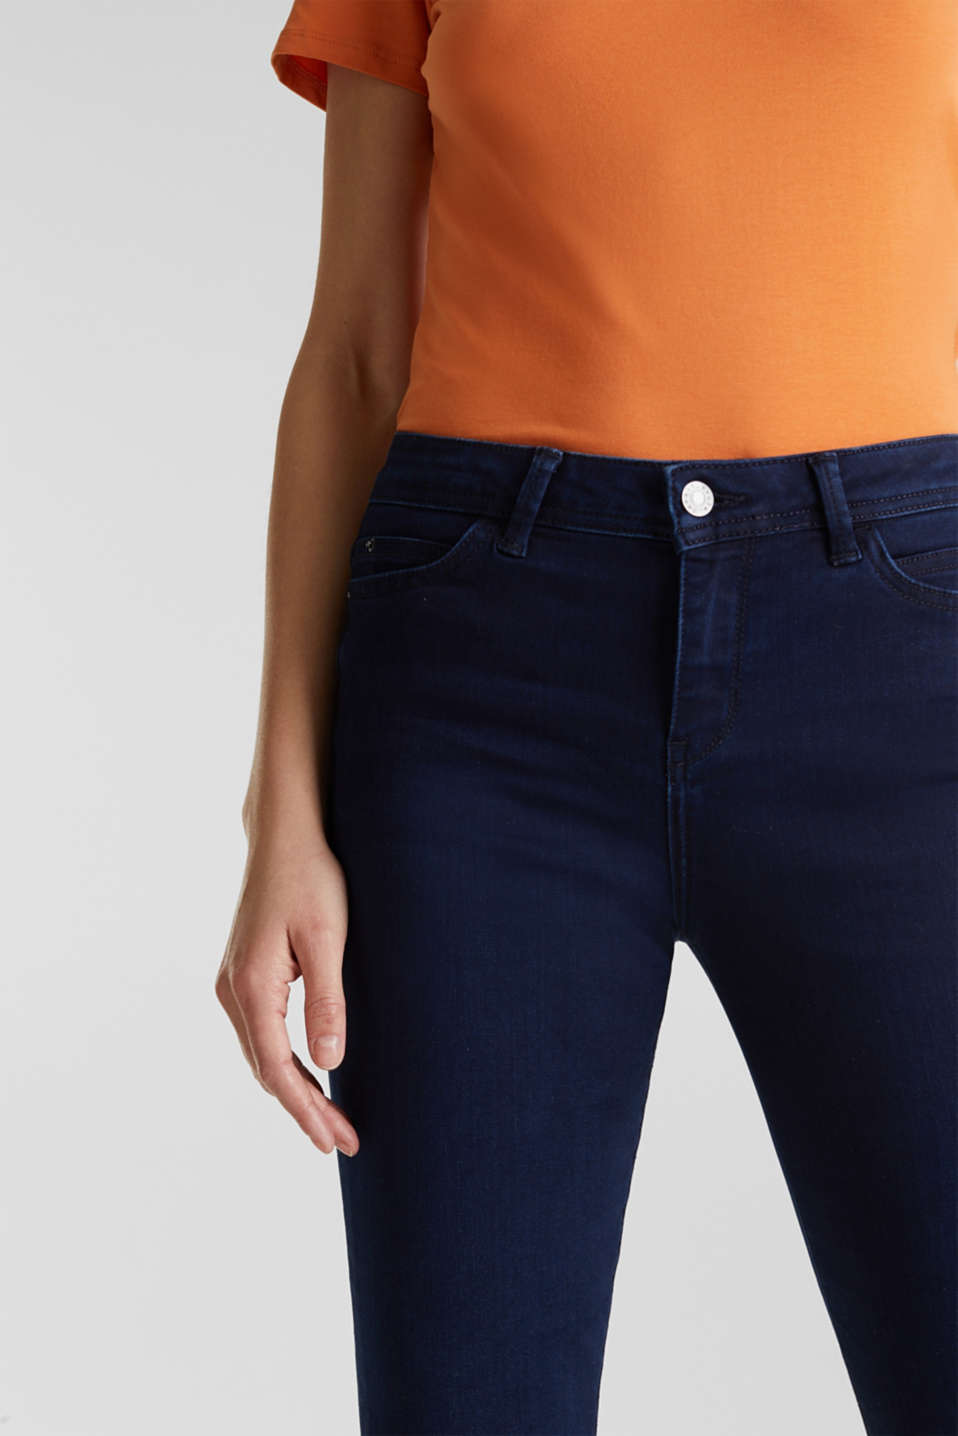 REPREVE stretch jeans with recycled polyester, BLUE DARK WASH, detail image number 2